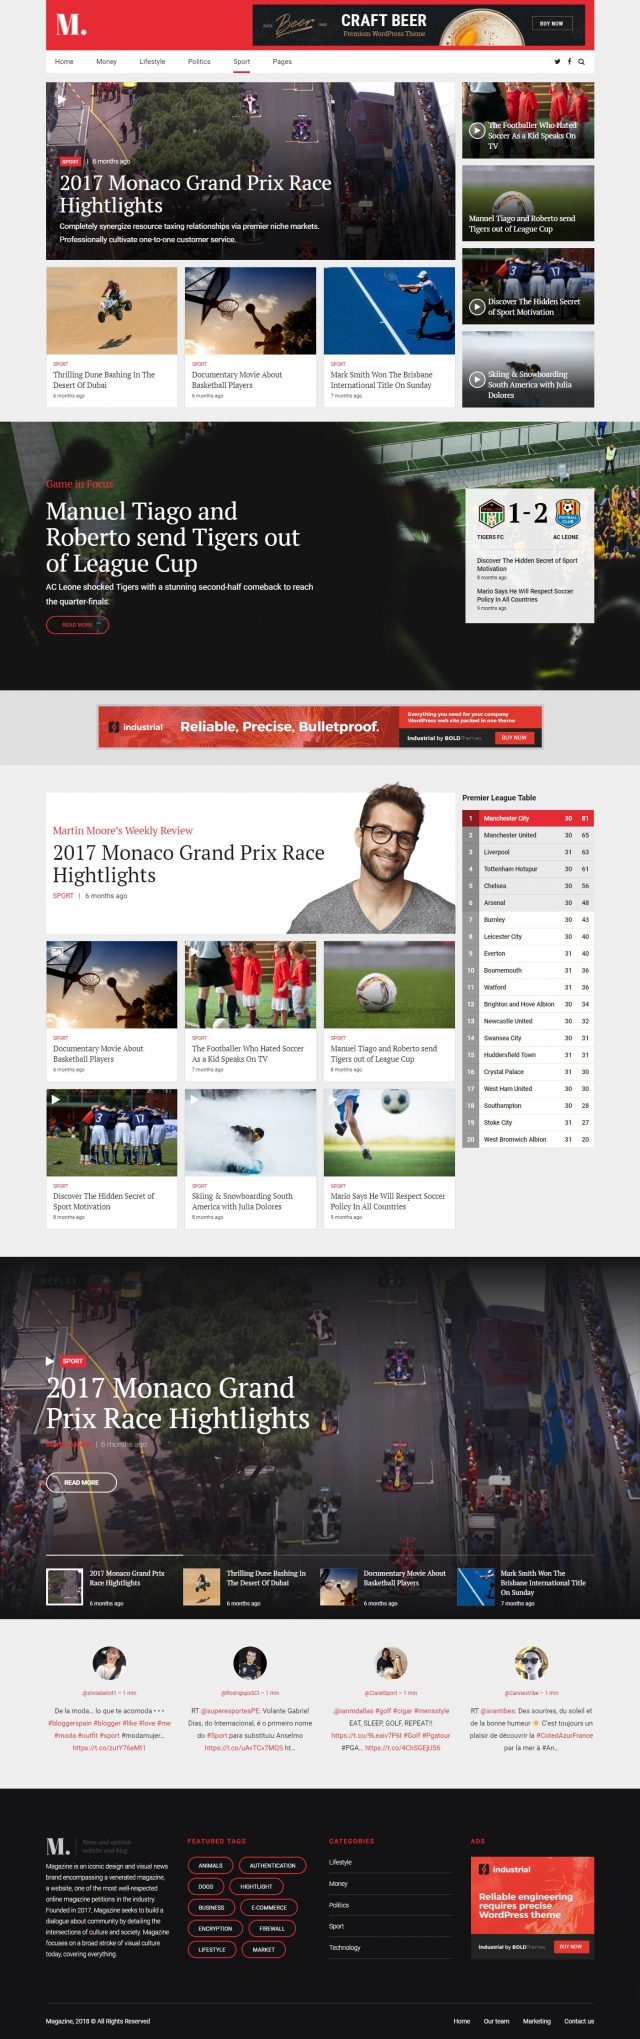 newstar wordpress theme sports magazine homepage layout